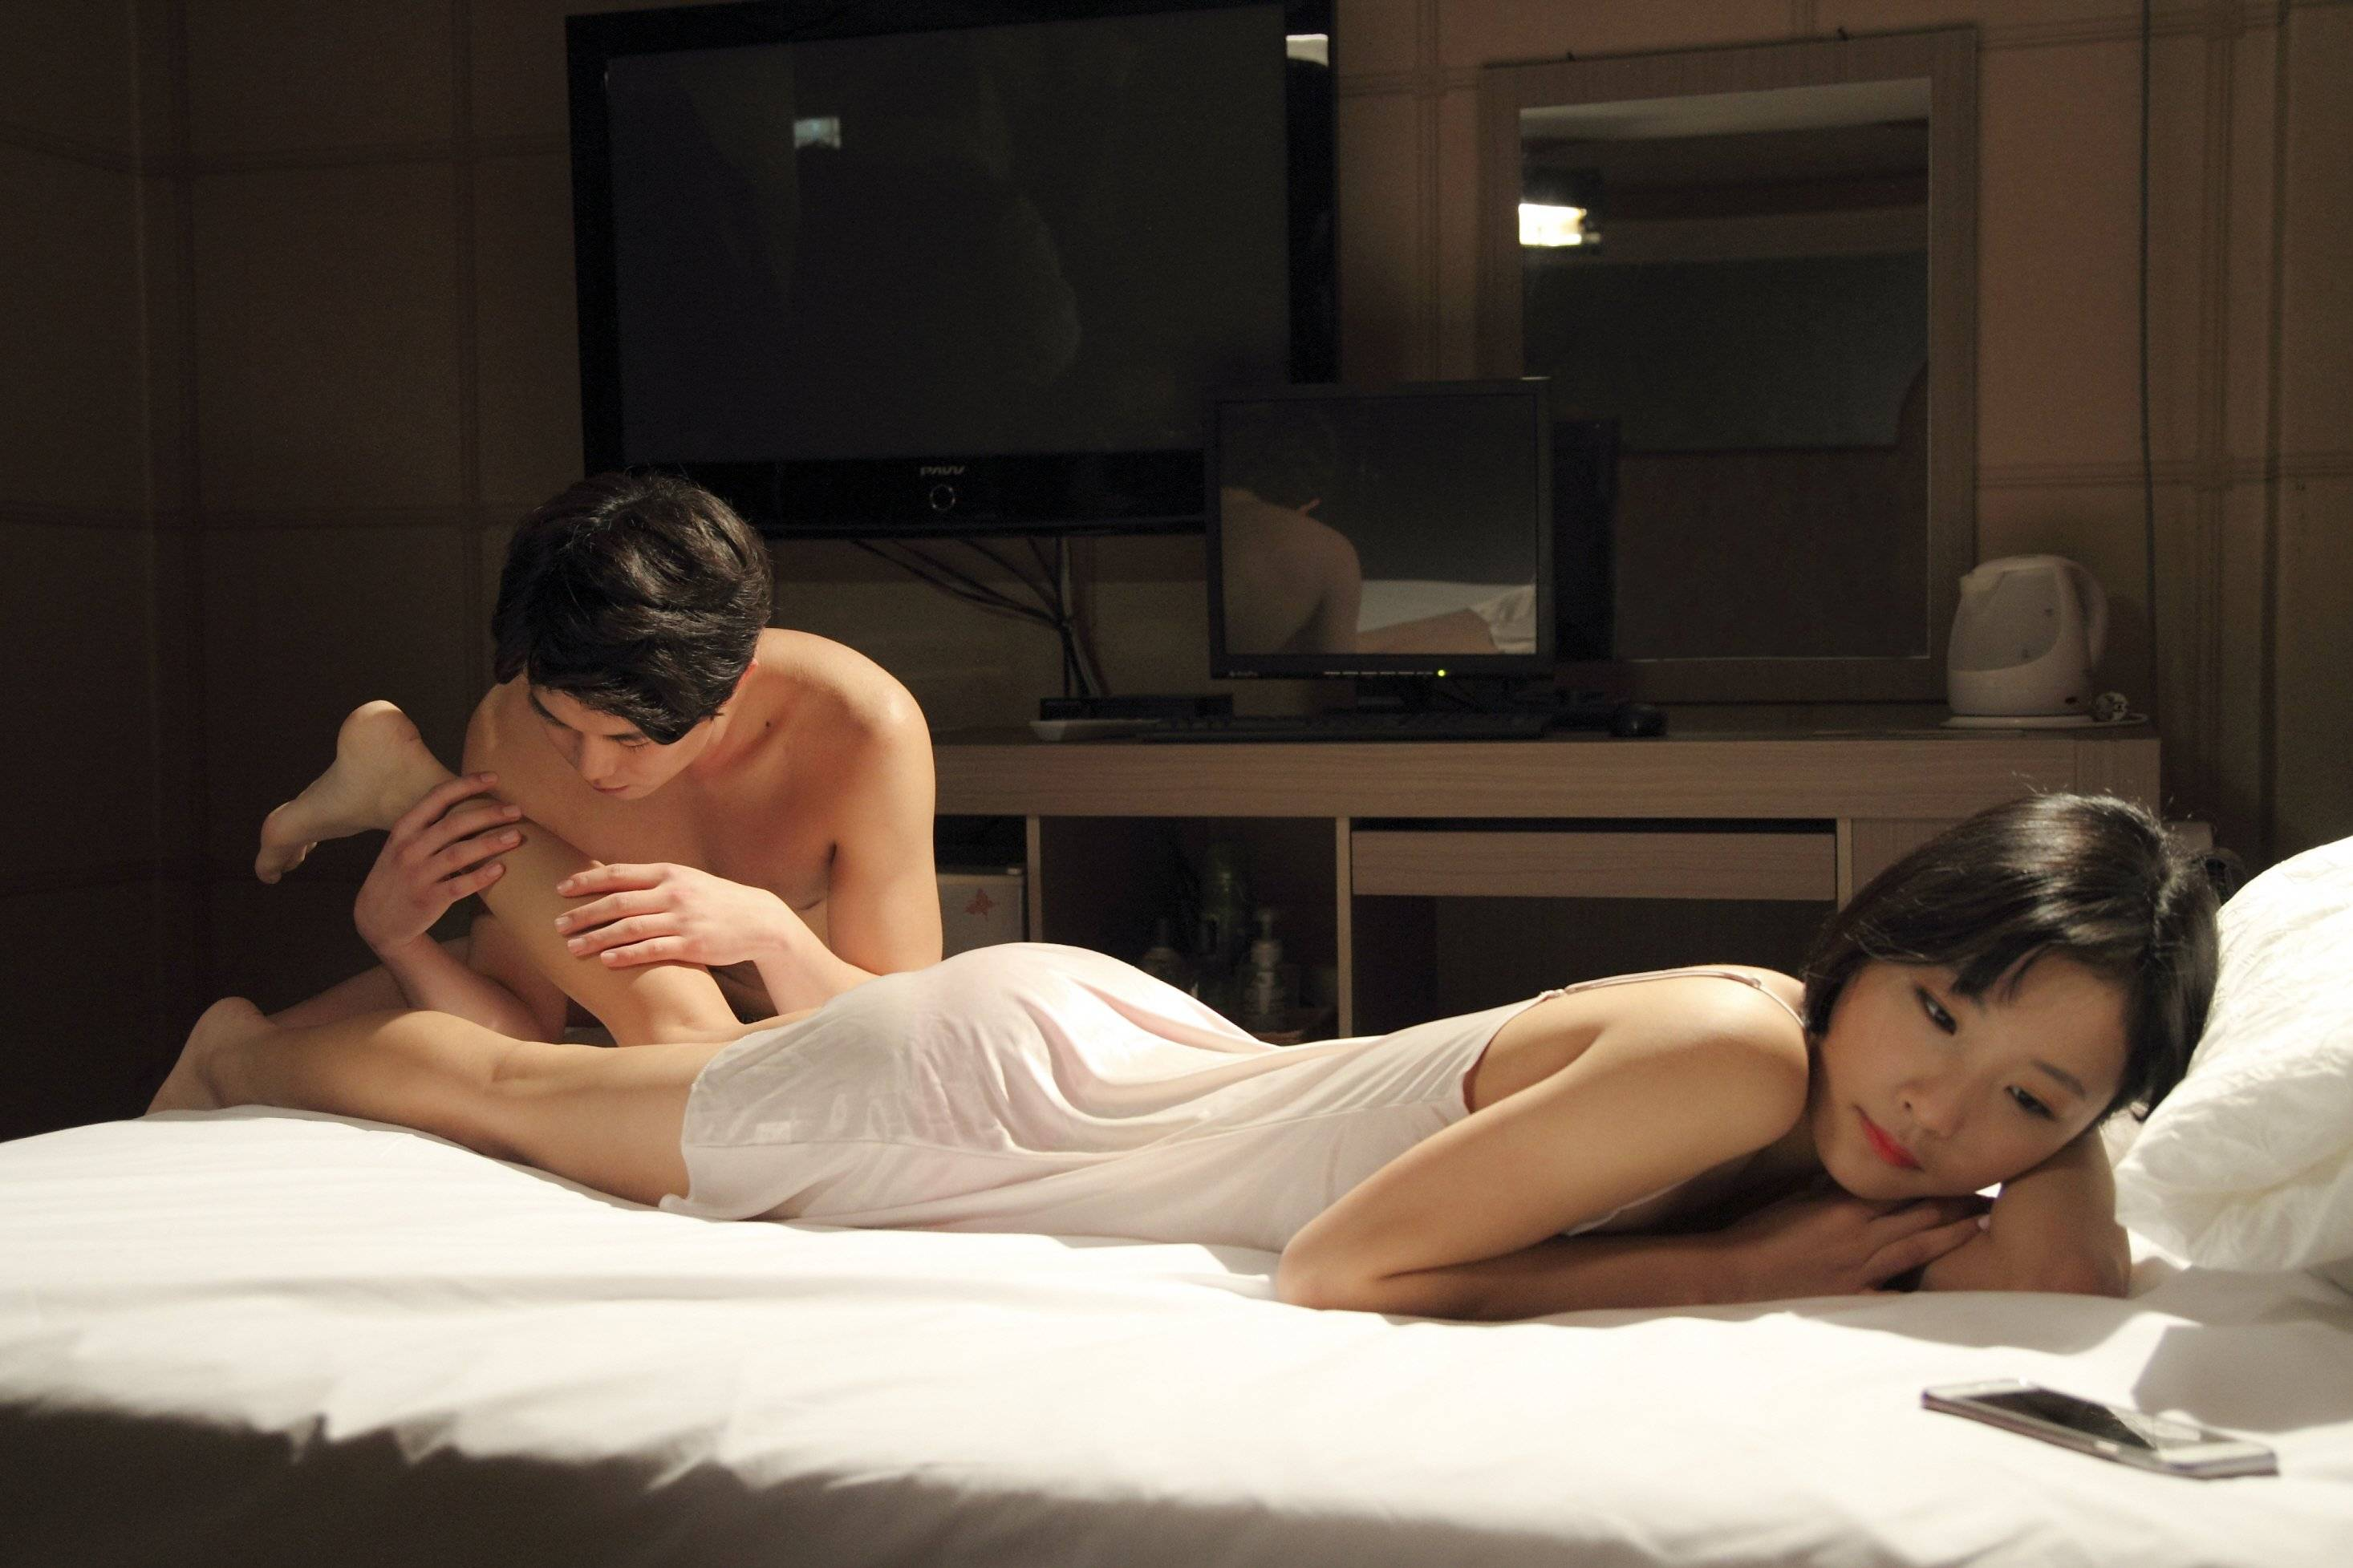 Best Rated Adult Movies 105